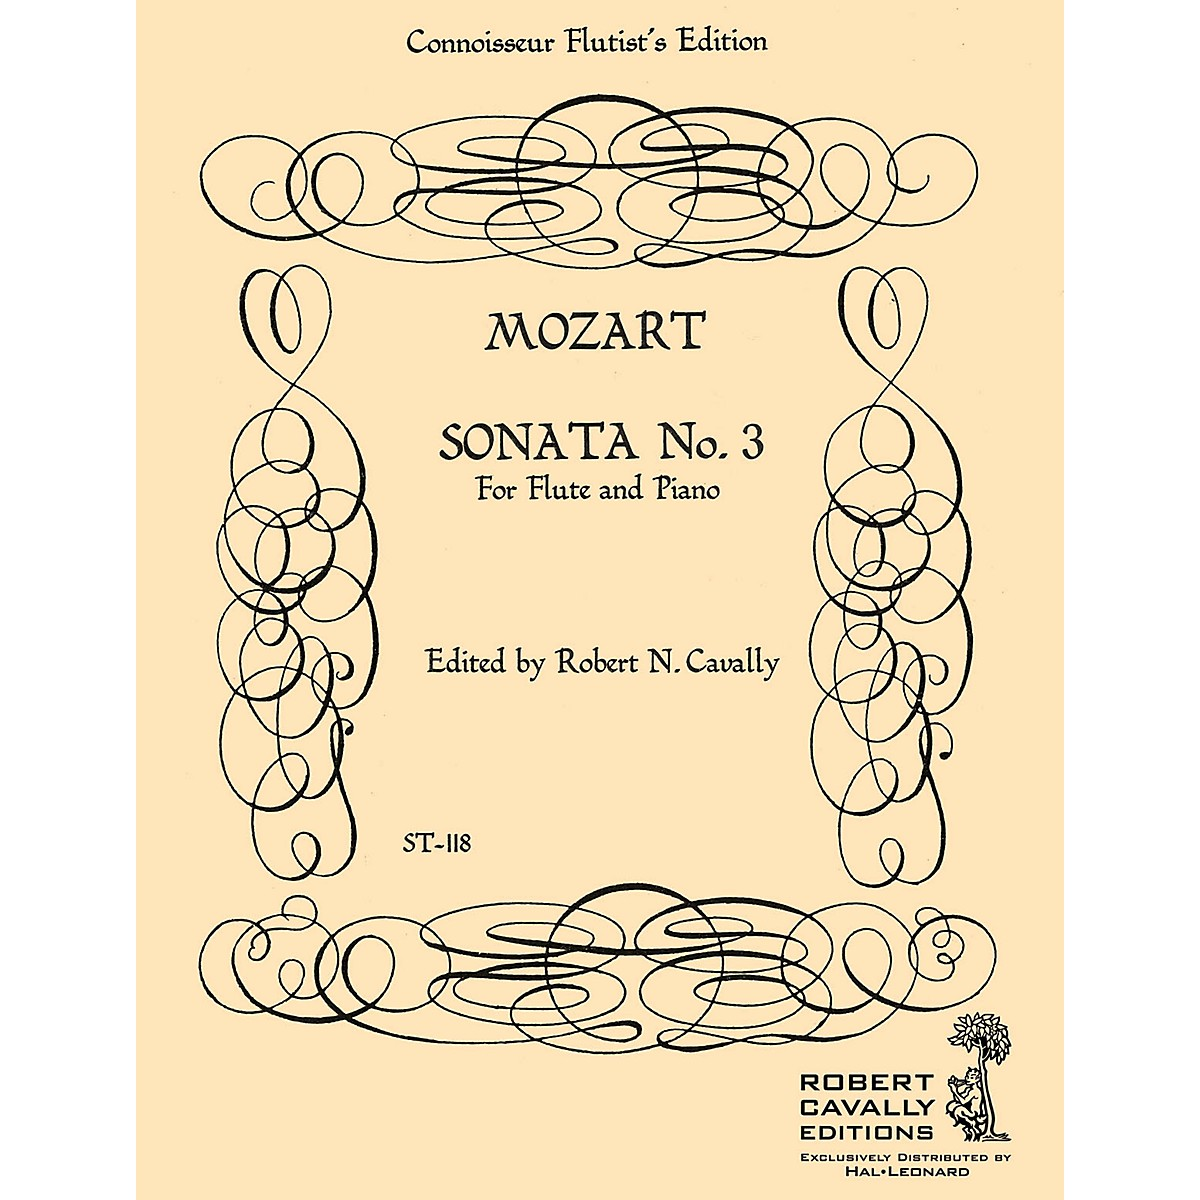 Cavally Editions Sonata No. 3 in A Major (Connoisseur Flutist's Edition) Robert Cavally Editions Series by Robert Cavally